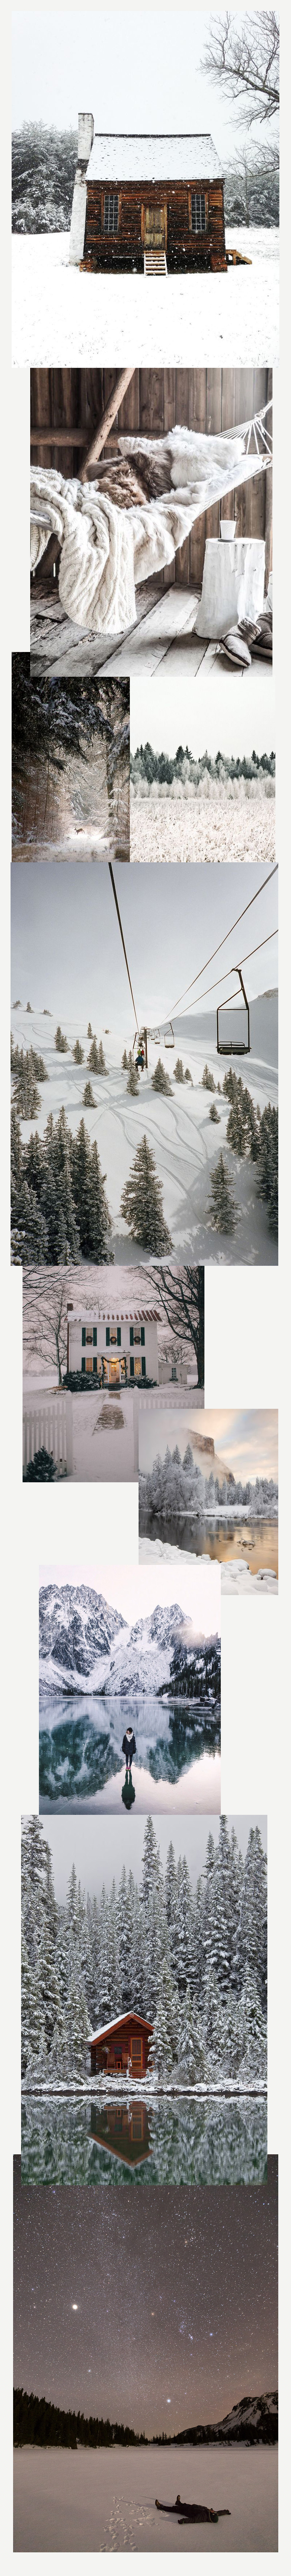 7-Daydreaming-WinterWonderland.png